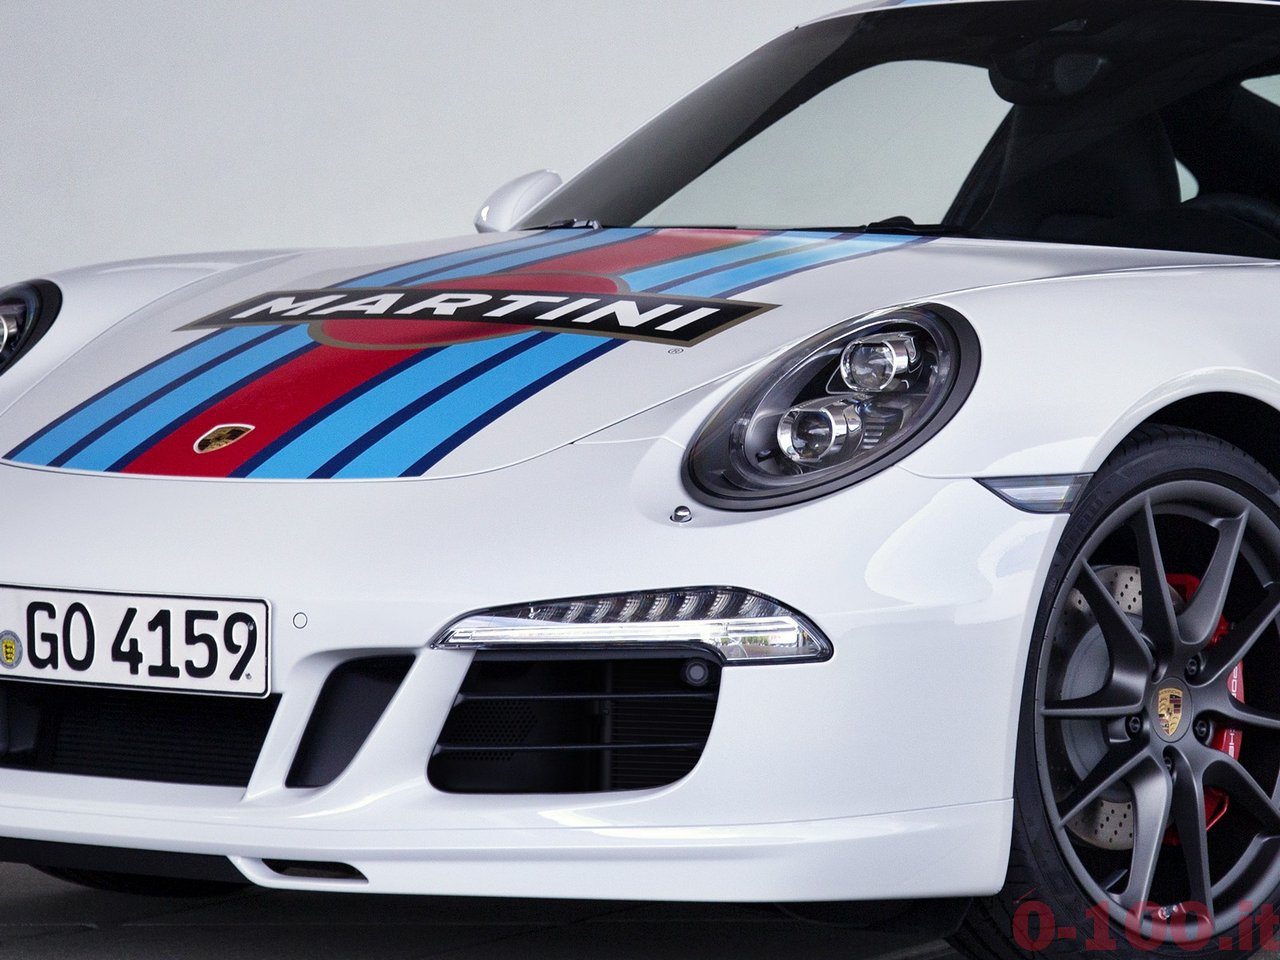 porsche-911-991-carrera-s-martini-racing-edition-0-100_6